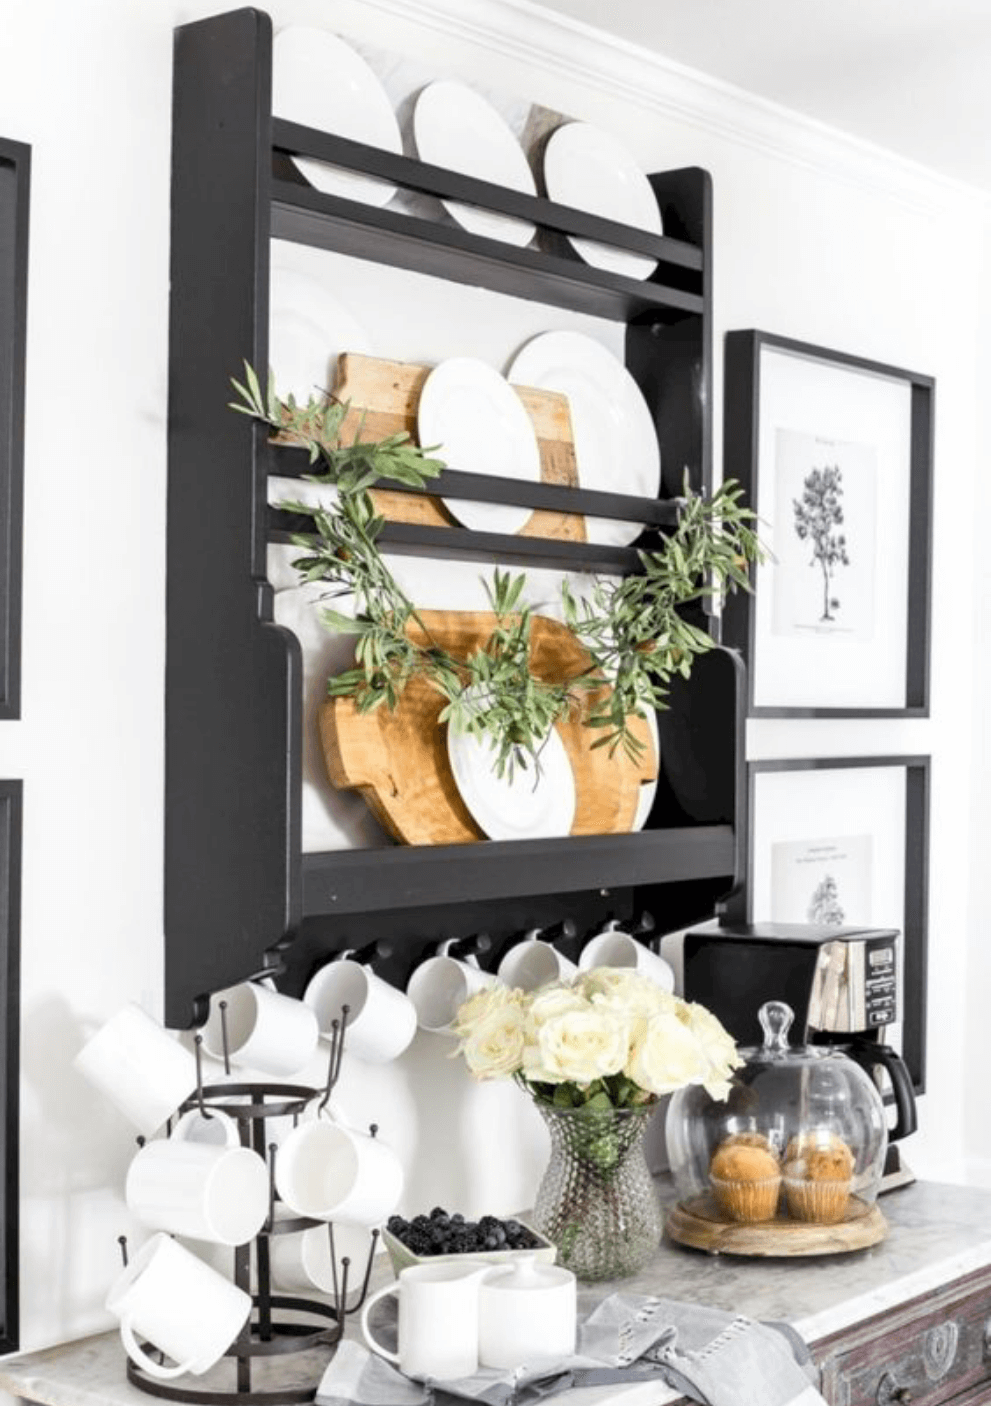 By installing a plate rack, you are saving time and preventing breakage while showing off your beautiful dishes!